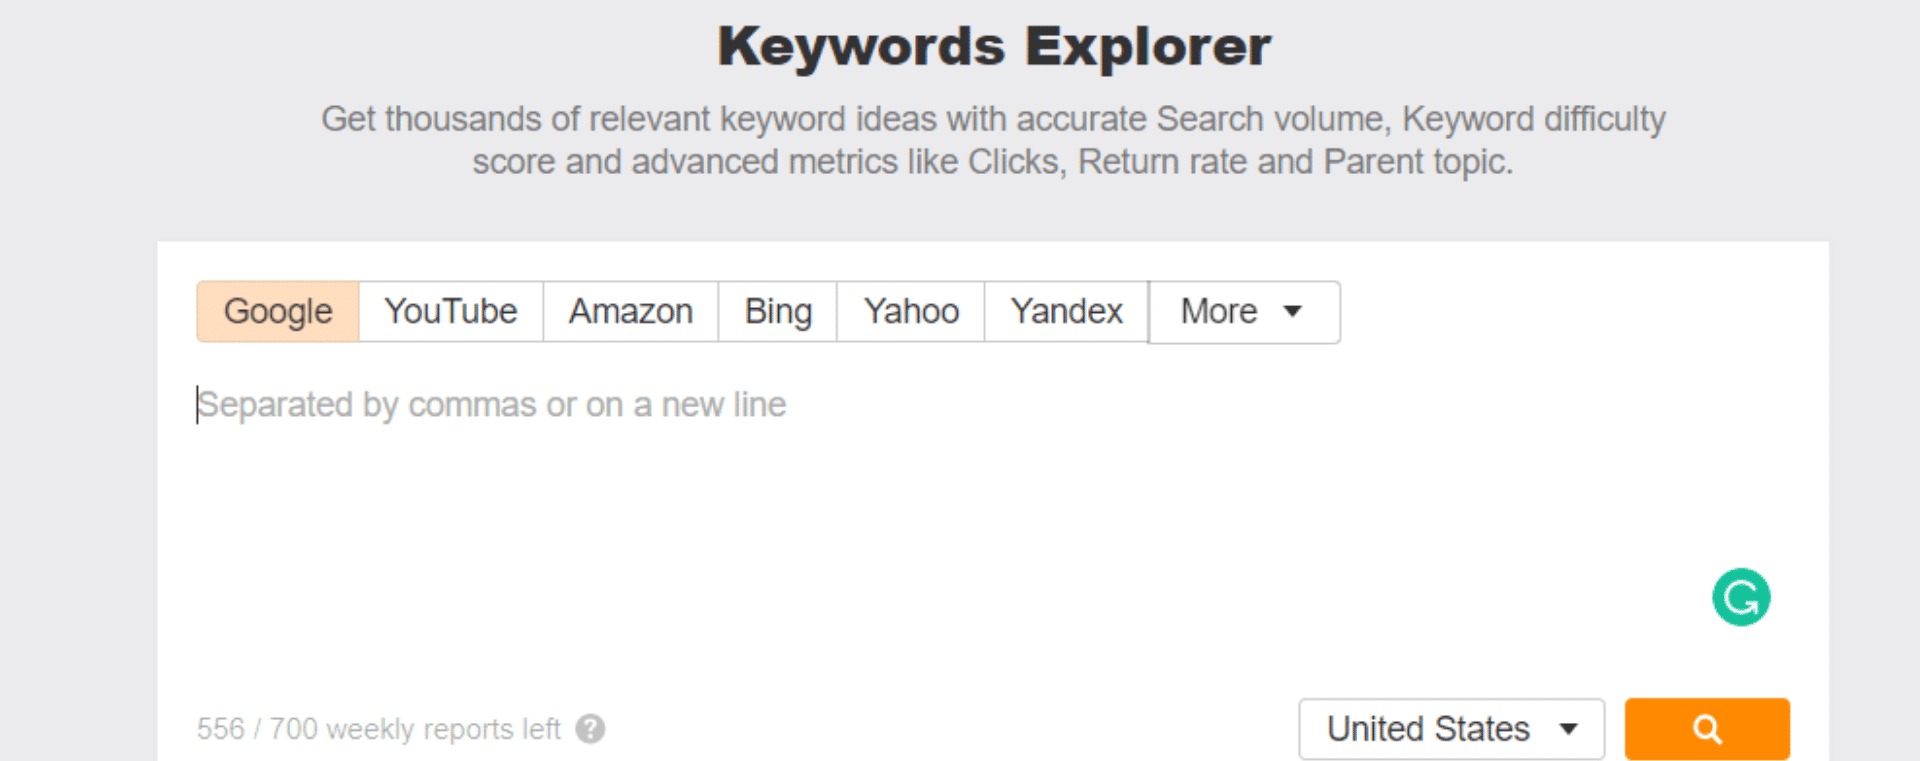 Keywords Using Keyword Explorer Tool?